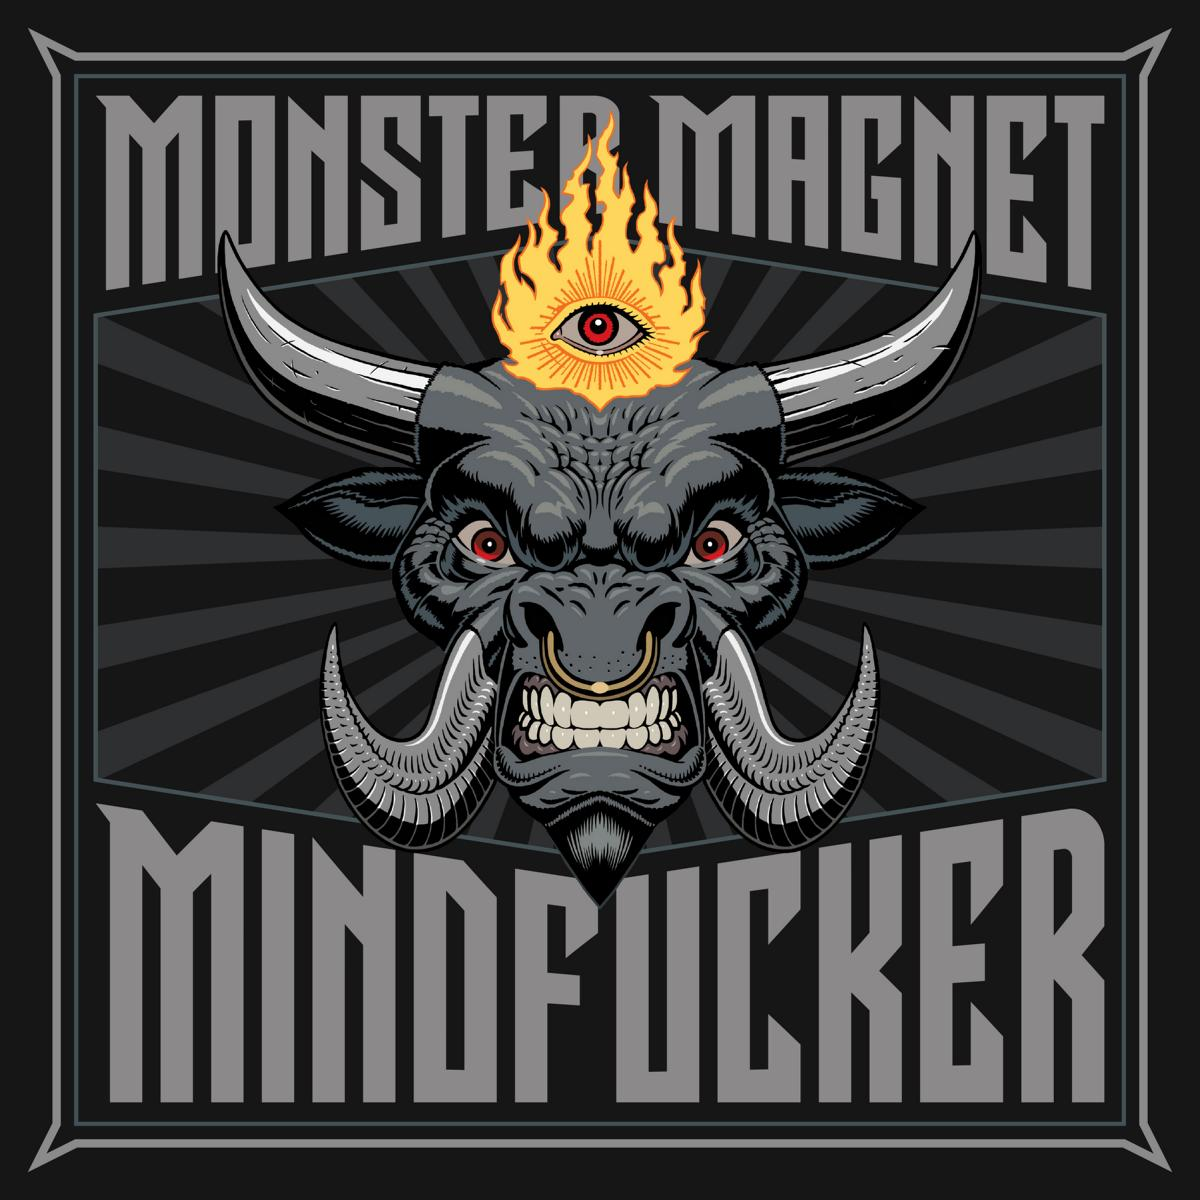 Monster Magnet Mindfucker artwork